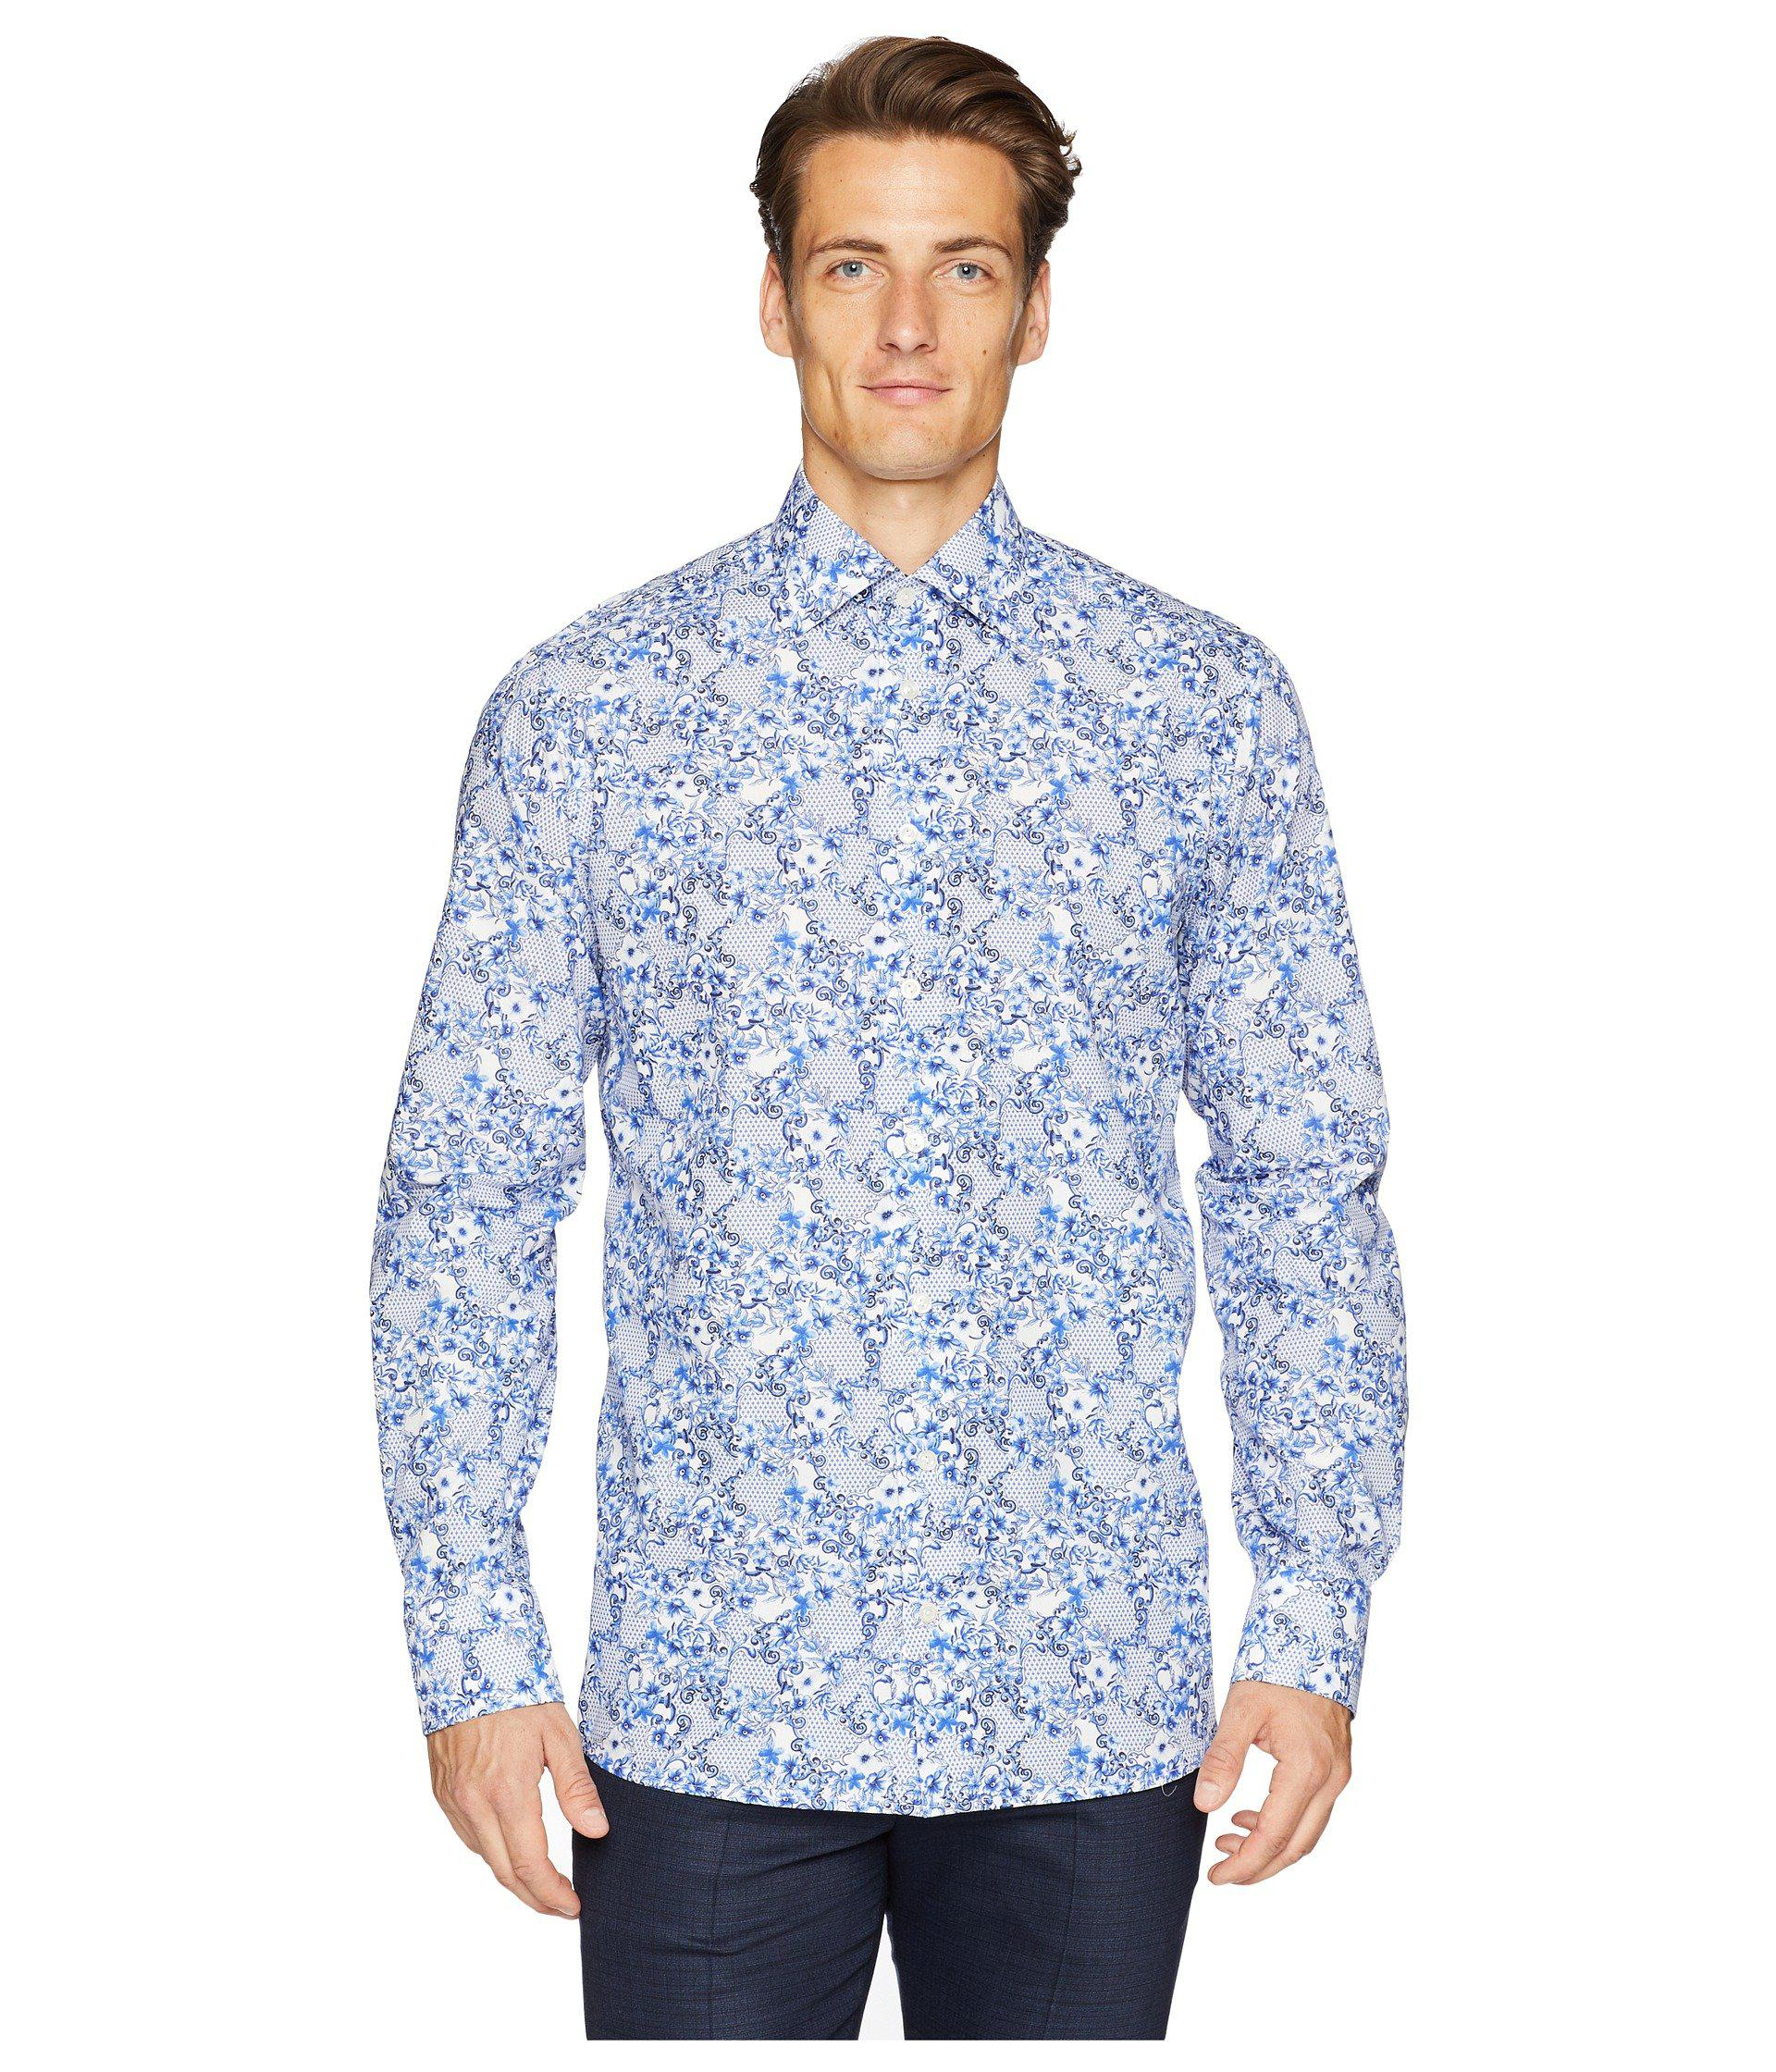 62c426823ac Lyst - Eton of Sweden Contemporary Fit Floral Printed Shirt in Blue ...